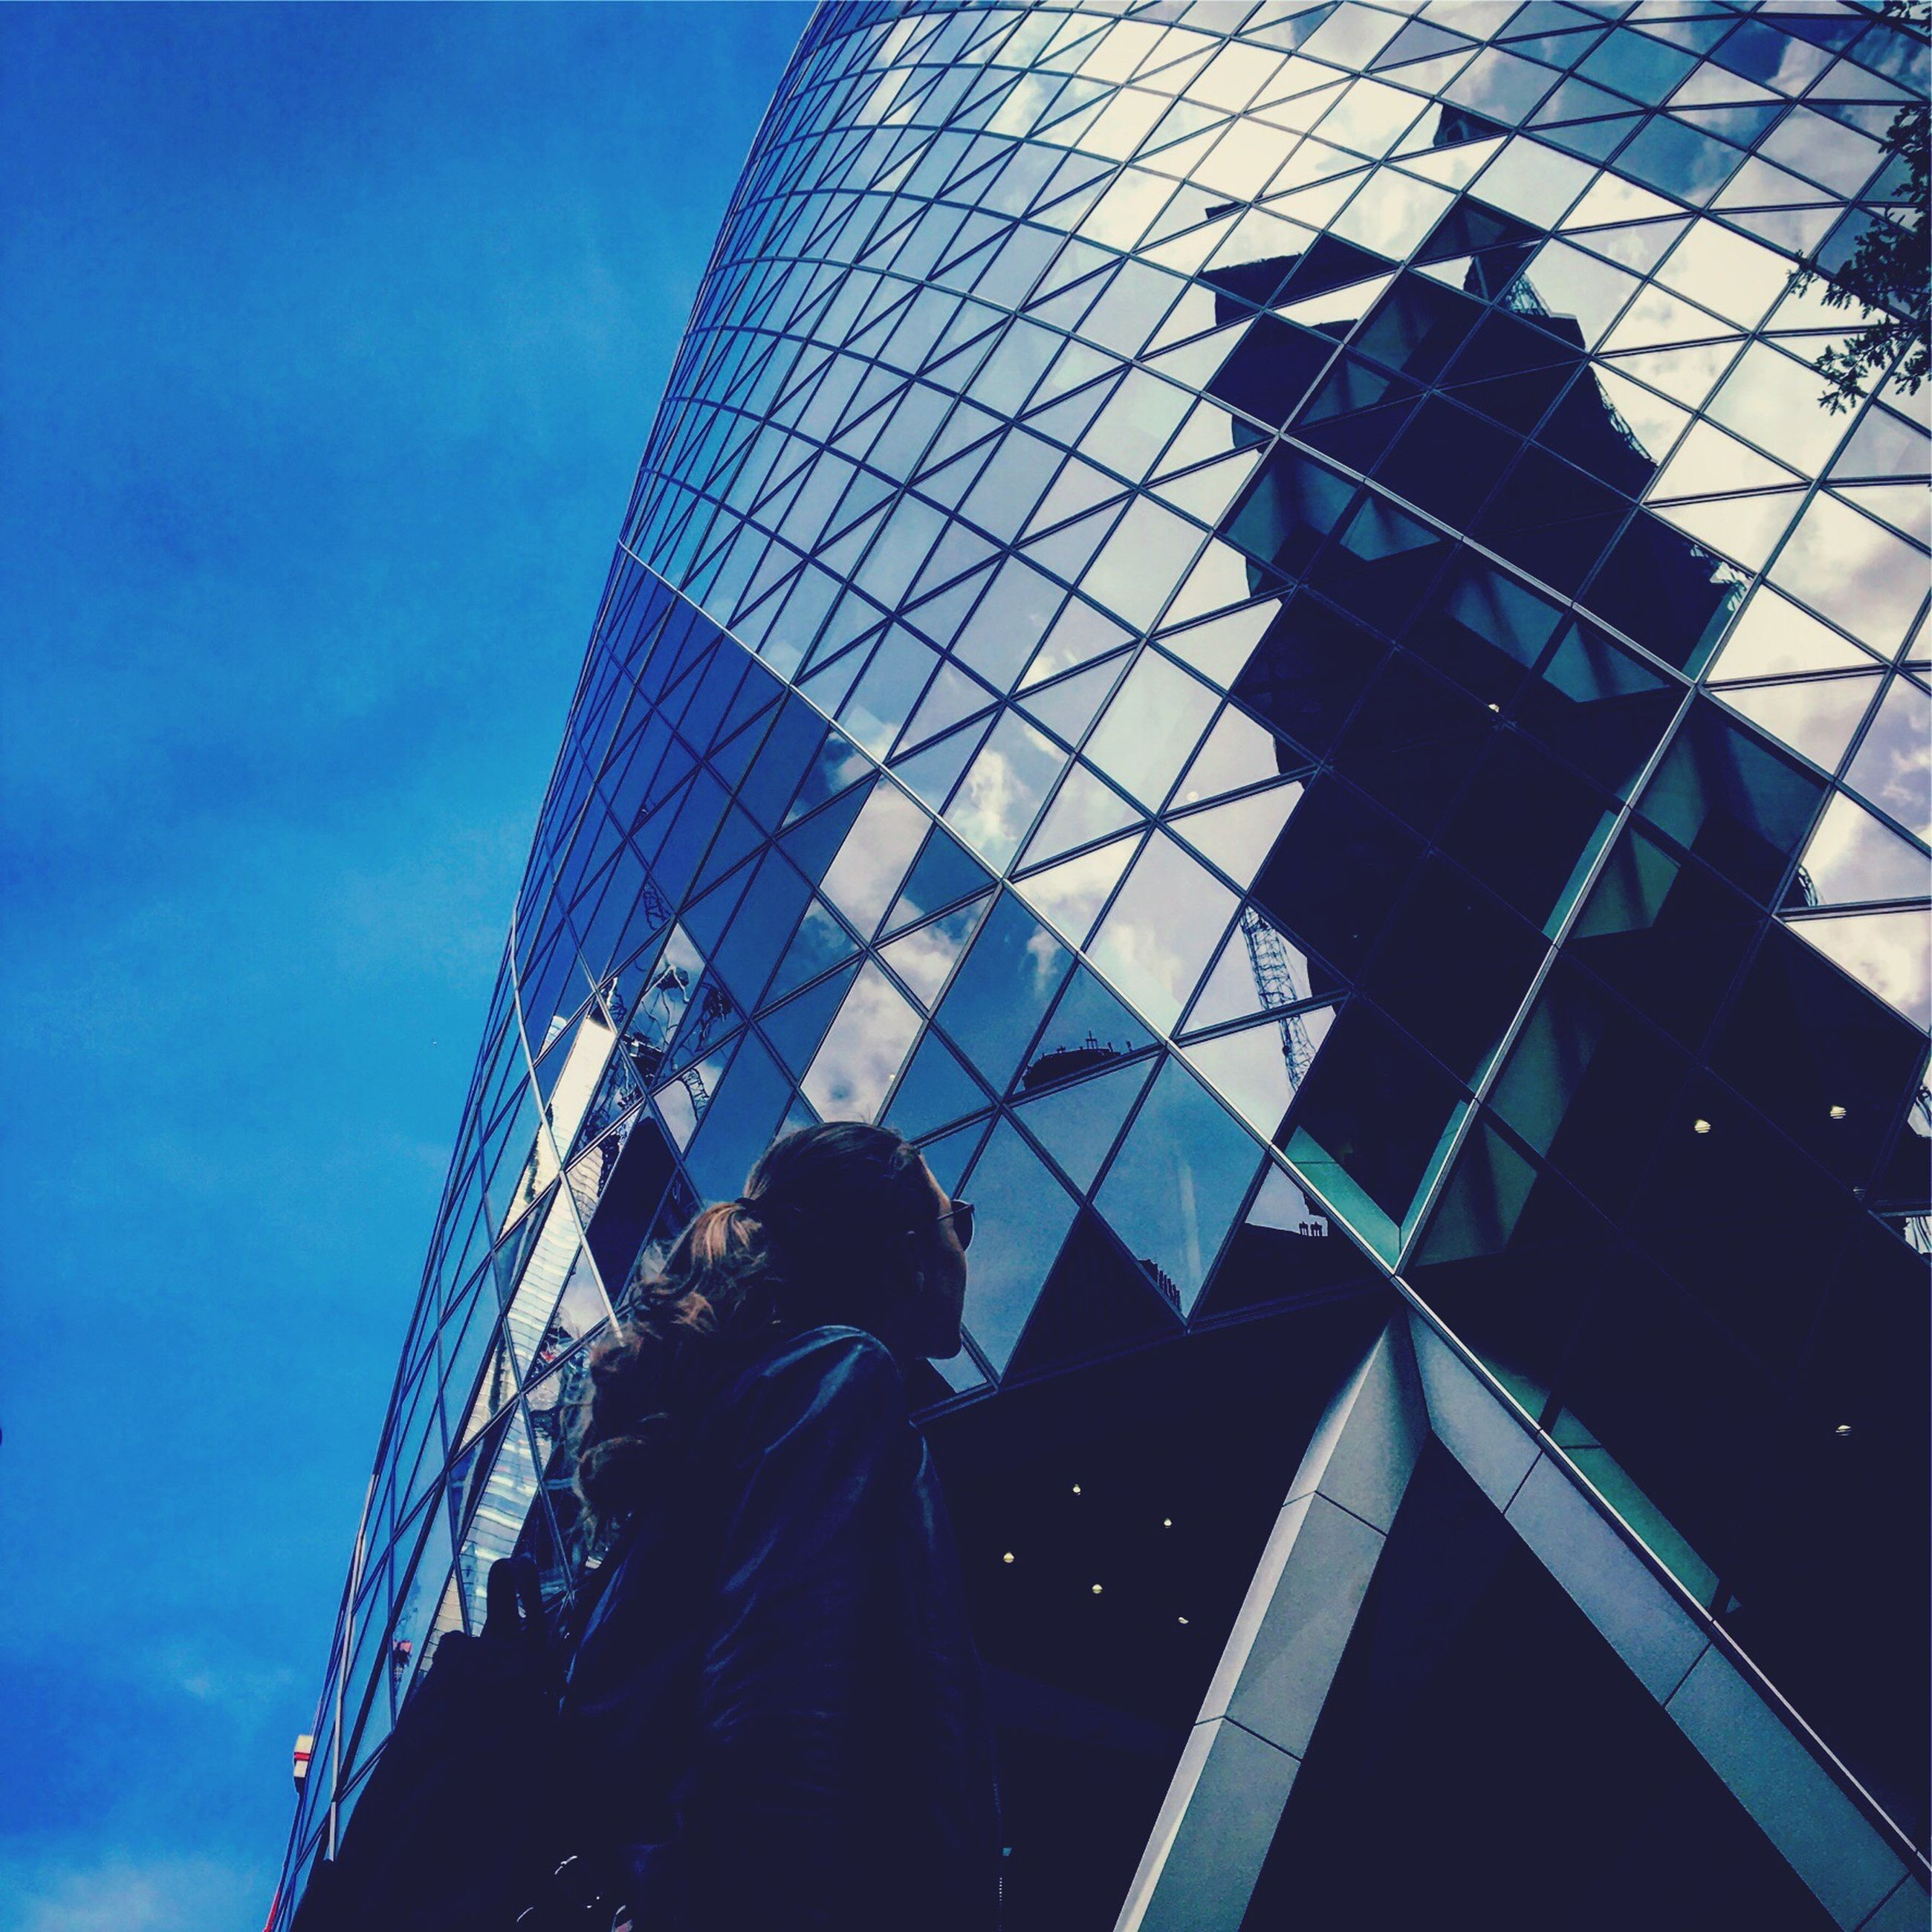 architecture, low angle view, built structure, modern, building exterior, skyscraper, reflection, real people, sky, city, travel destinations, day, blue, outdoors